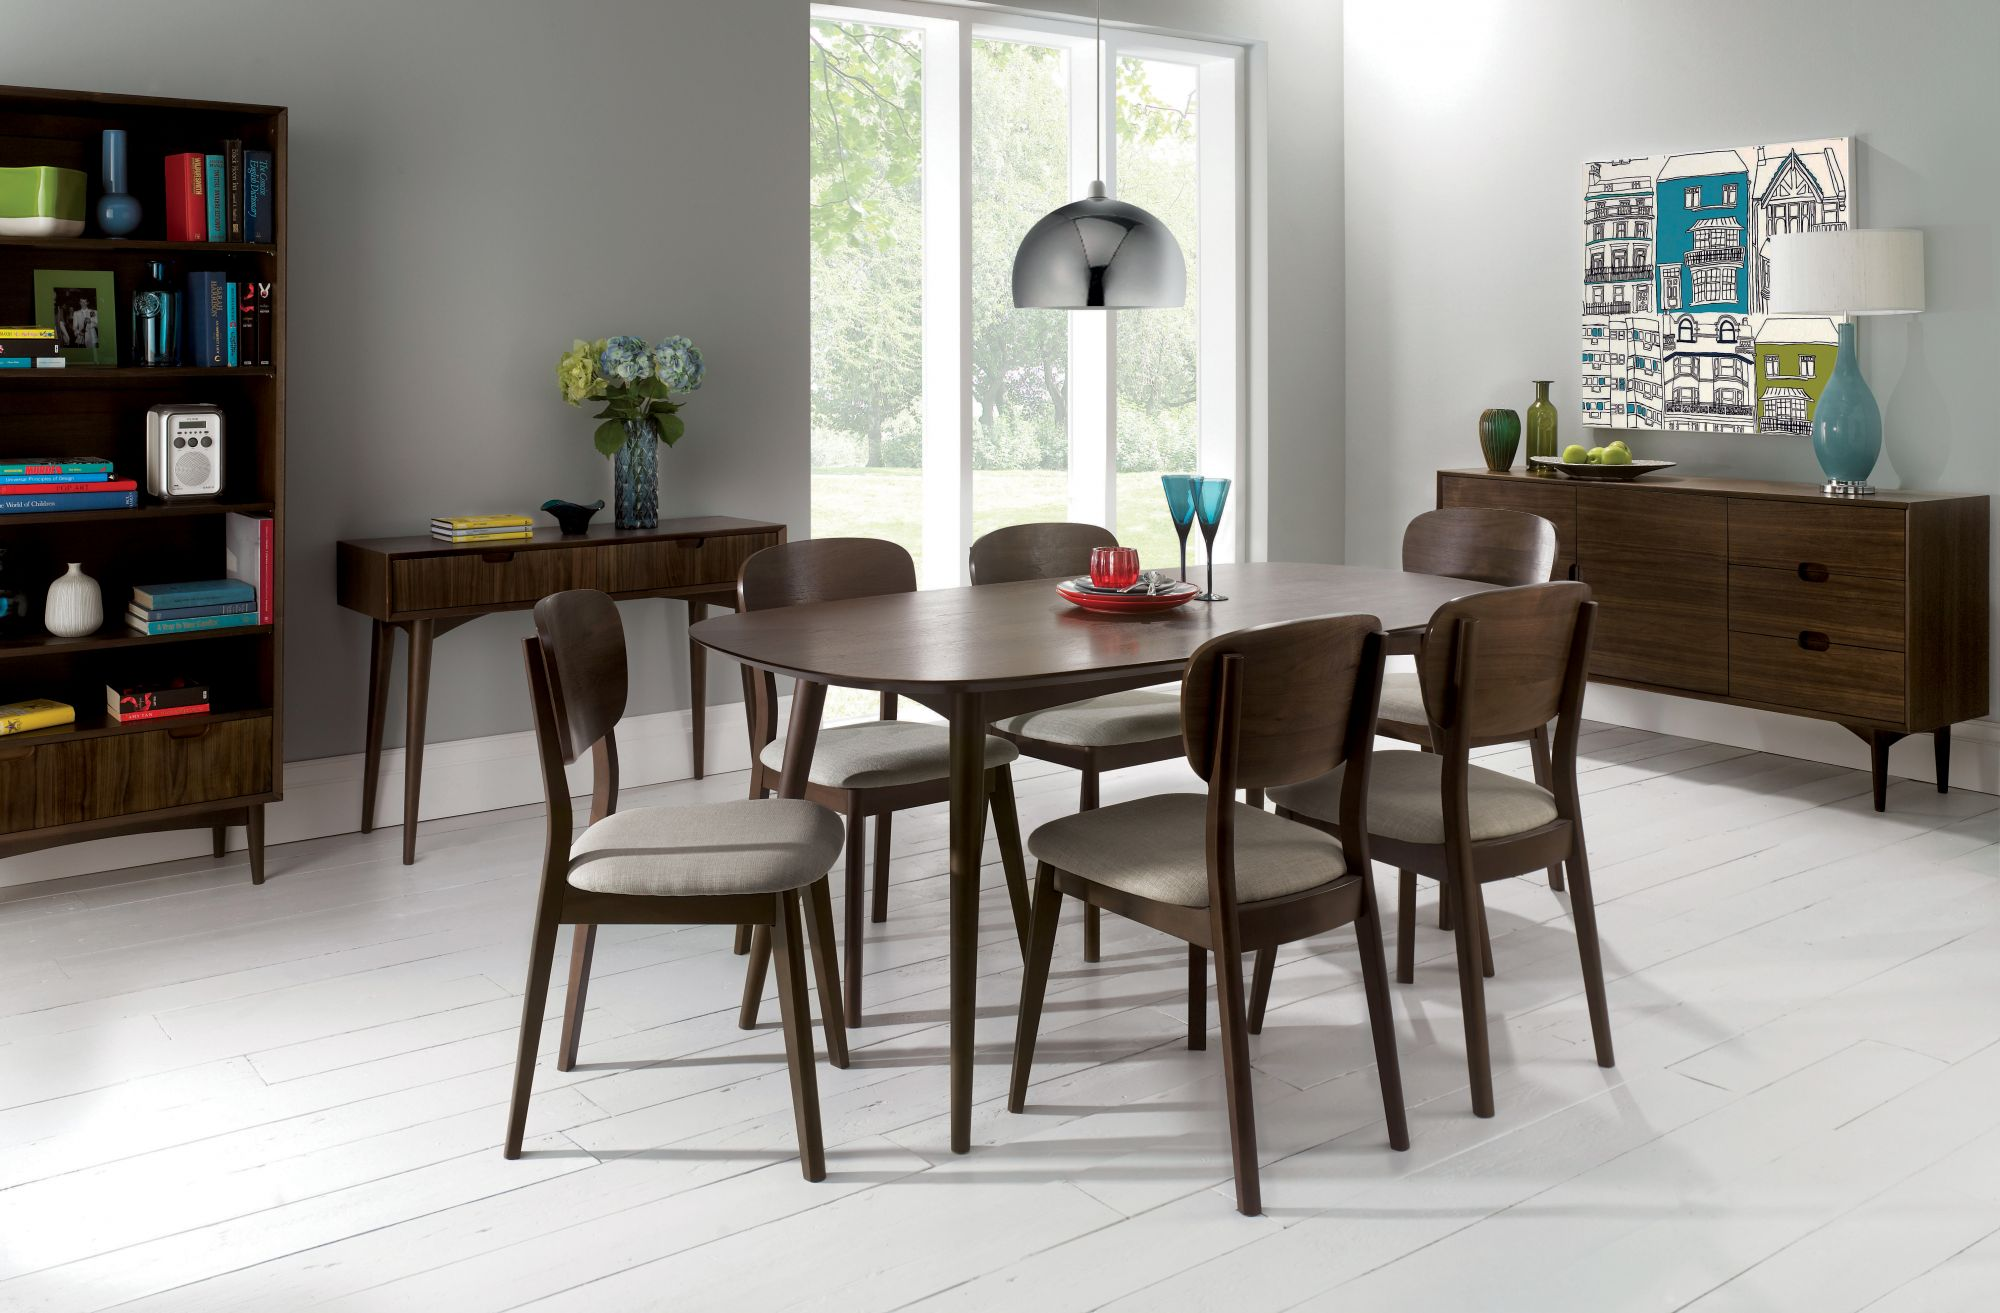 https://www.firstfurniture.co.uk/pub/media/catalog/product/7/_/7_11_7.jpg